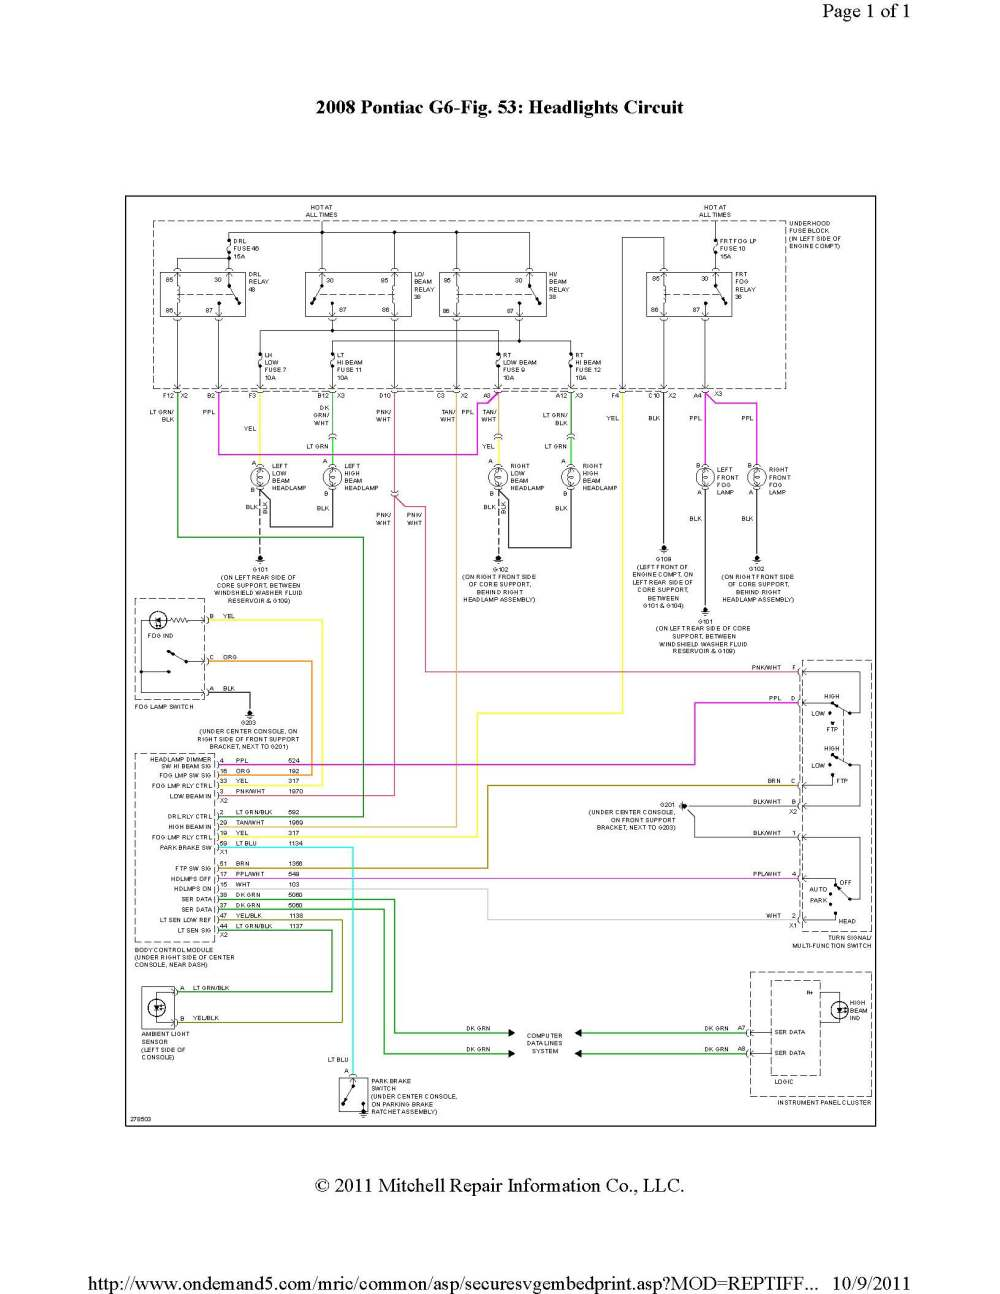 medium resolution of g6 headlight wiring harness data diagram schematic 2008 pontiac g6 headlight wiring diagram 2008 pontiac g6